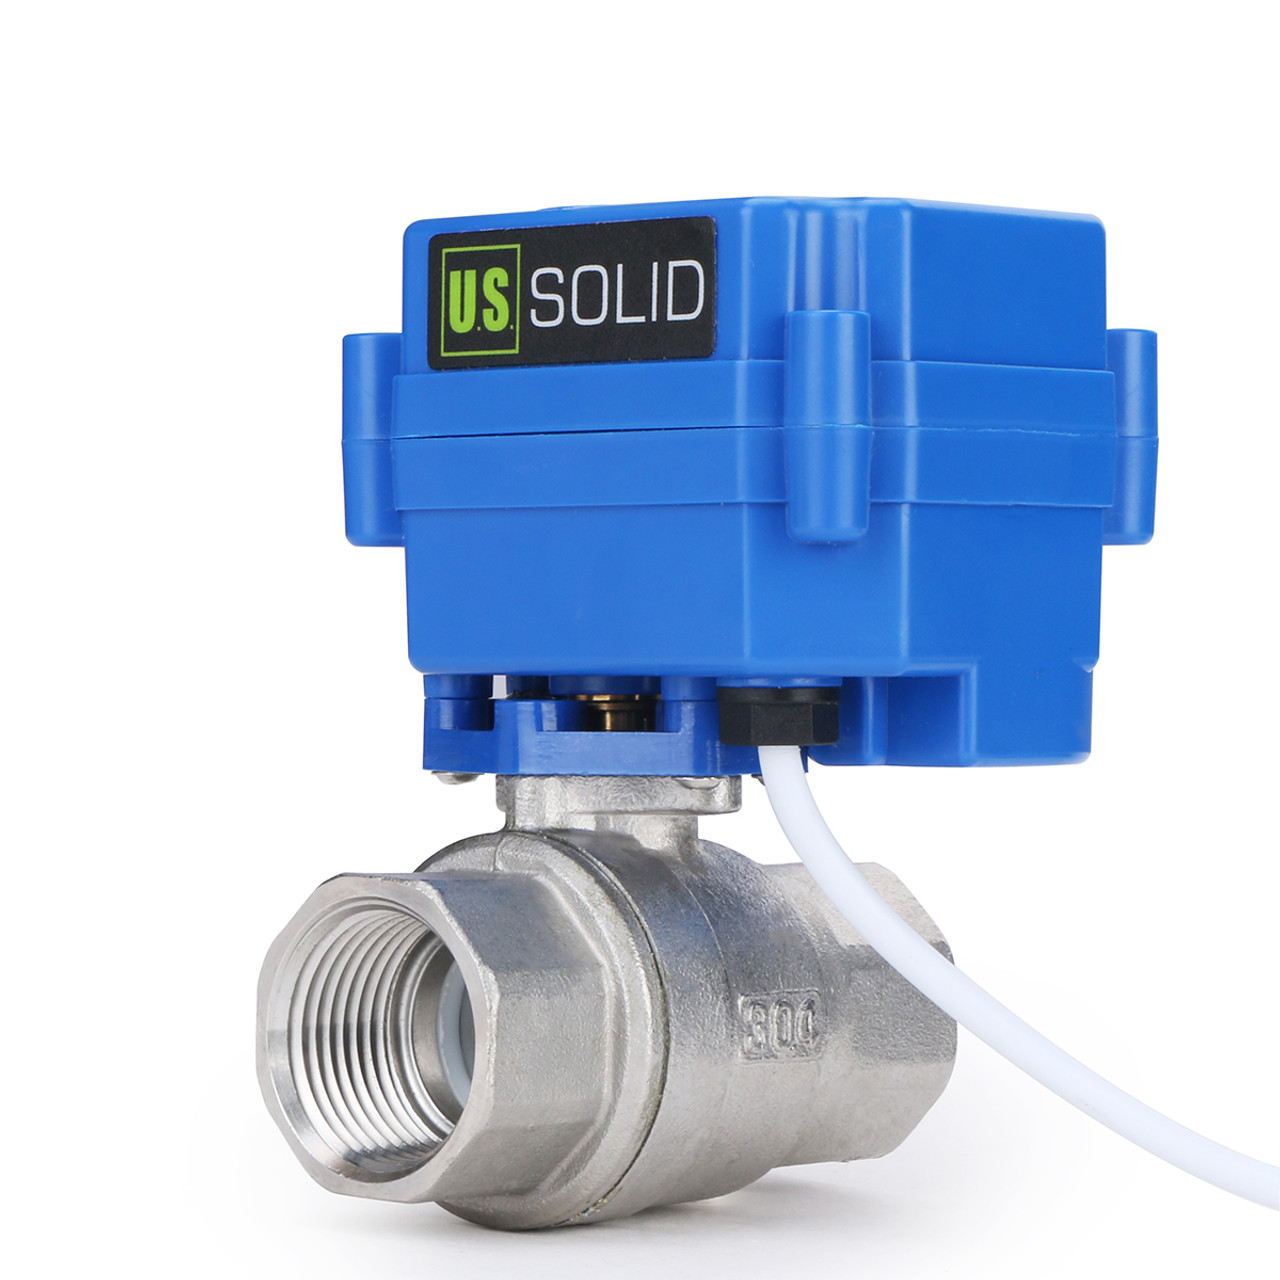 """U.S. Solid Motorized Ball Valve- 3/4"""" Stainless Steel Electrical Ball Valve with Full Port, 9-24 V AC/DC, 2 Wire Auto Return, Normally Open"""